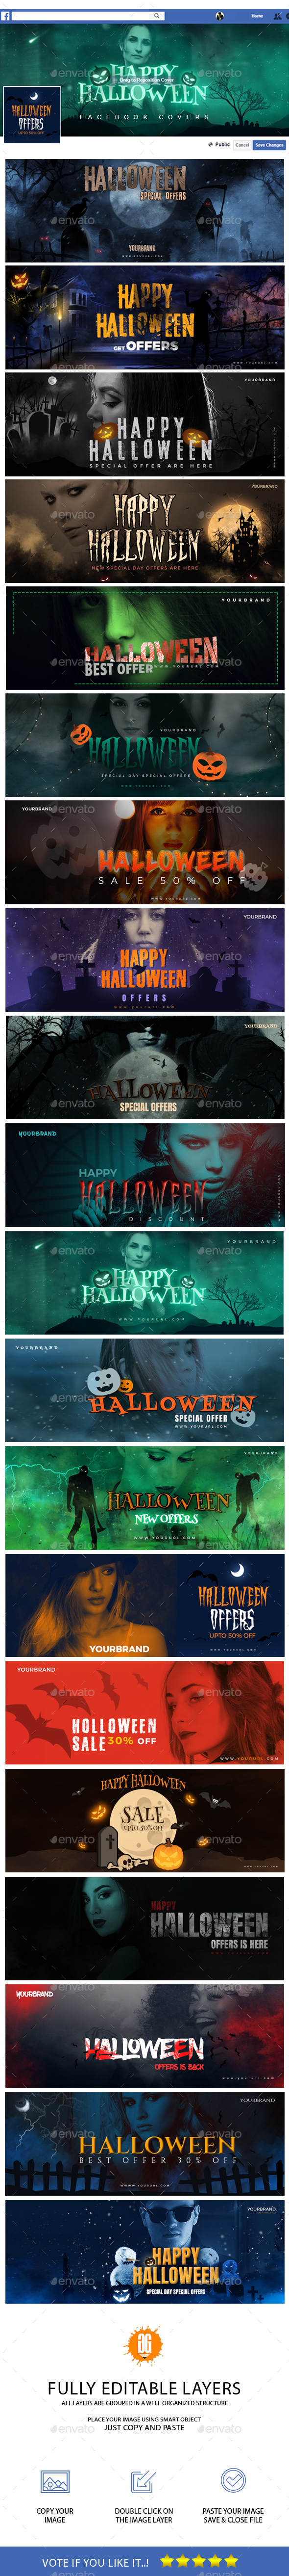 20 Halloween Facebook Timeline Cover - Facebook Timeline Covers Social Media